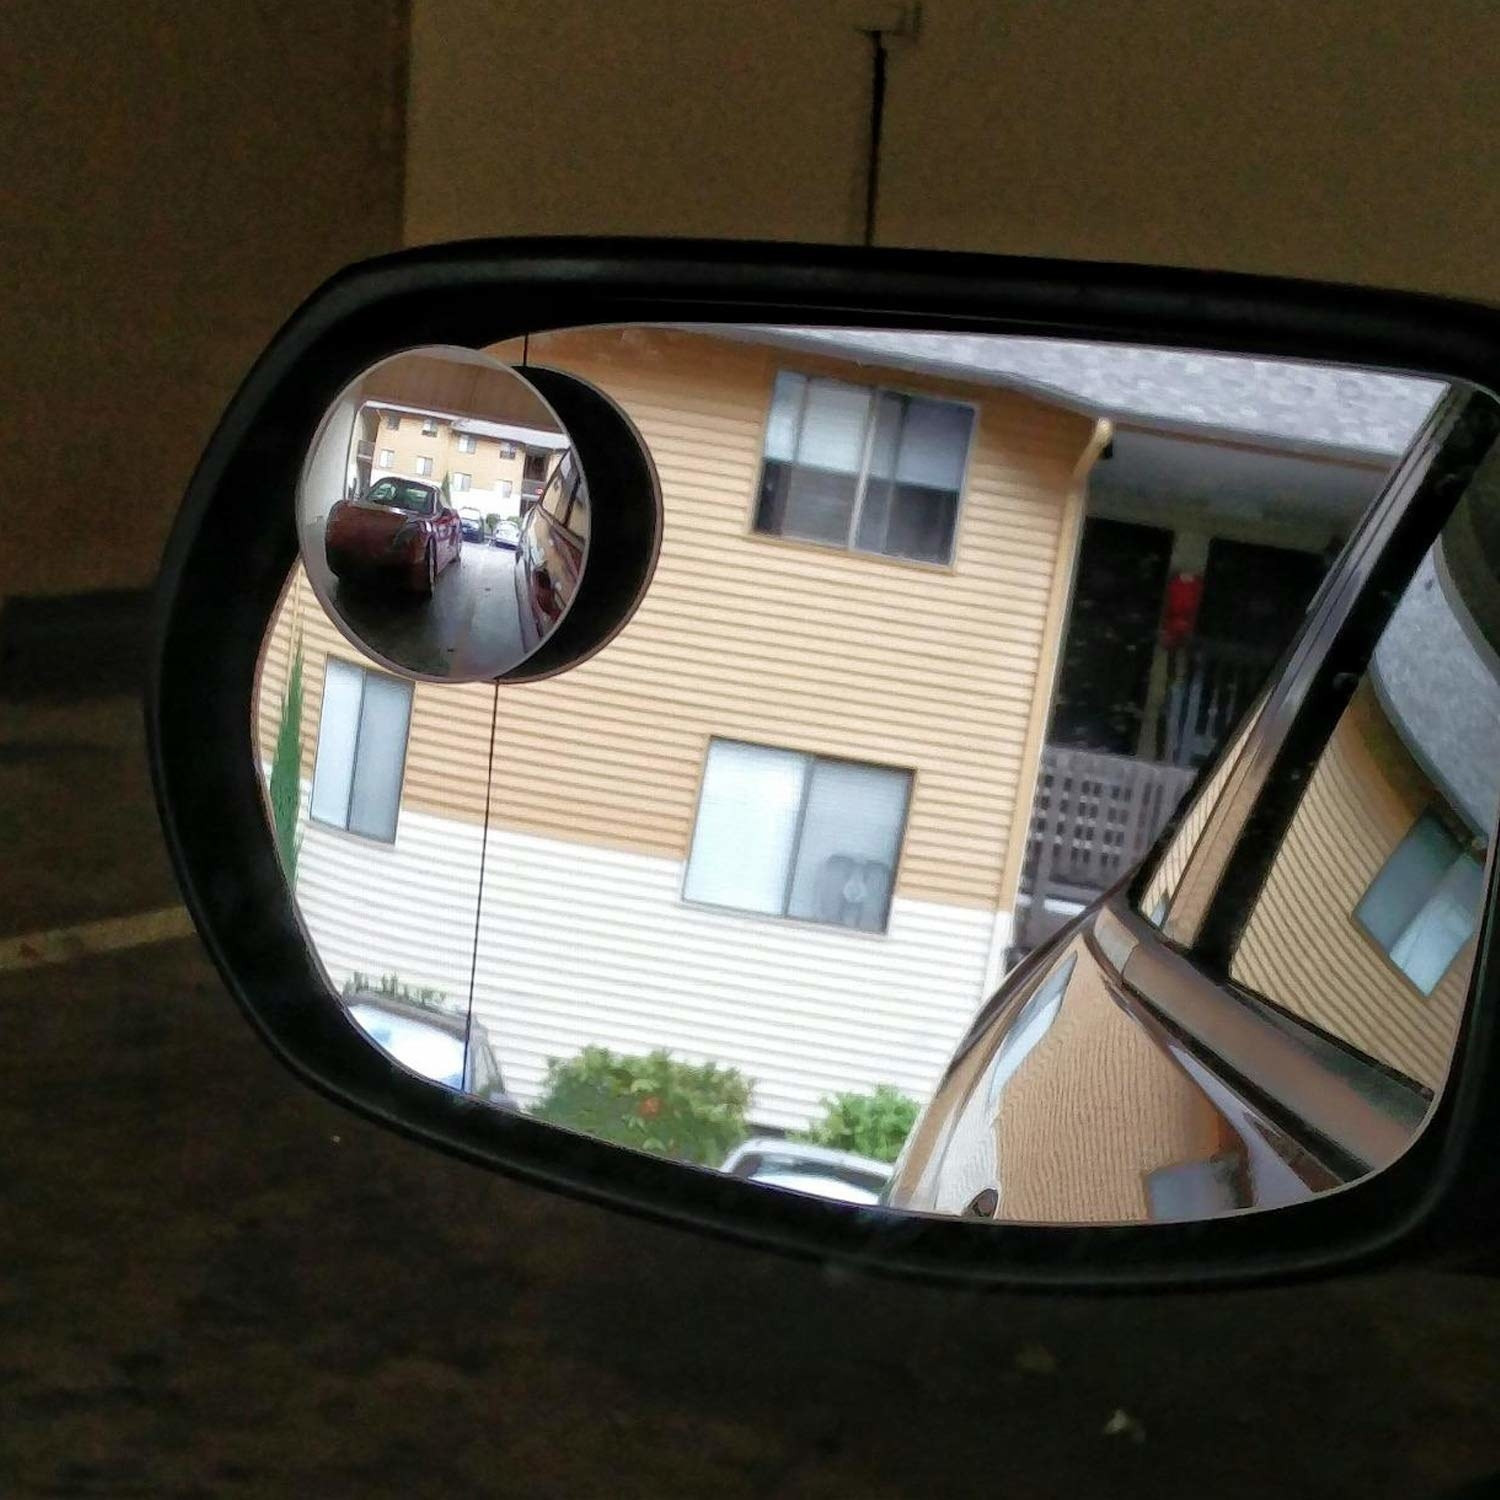 Blindspot mirror being used on their rearview car mirror